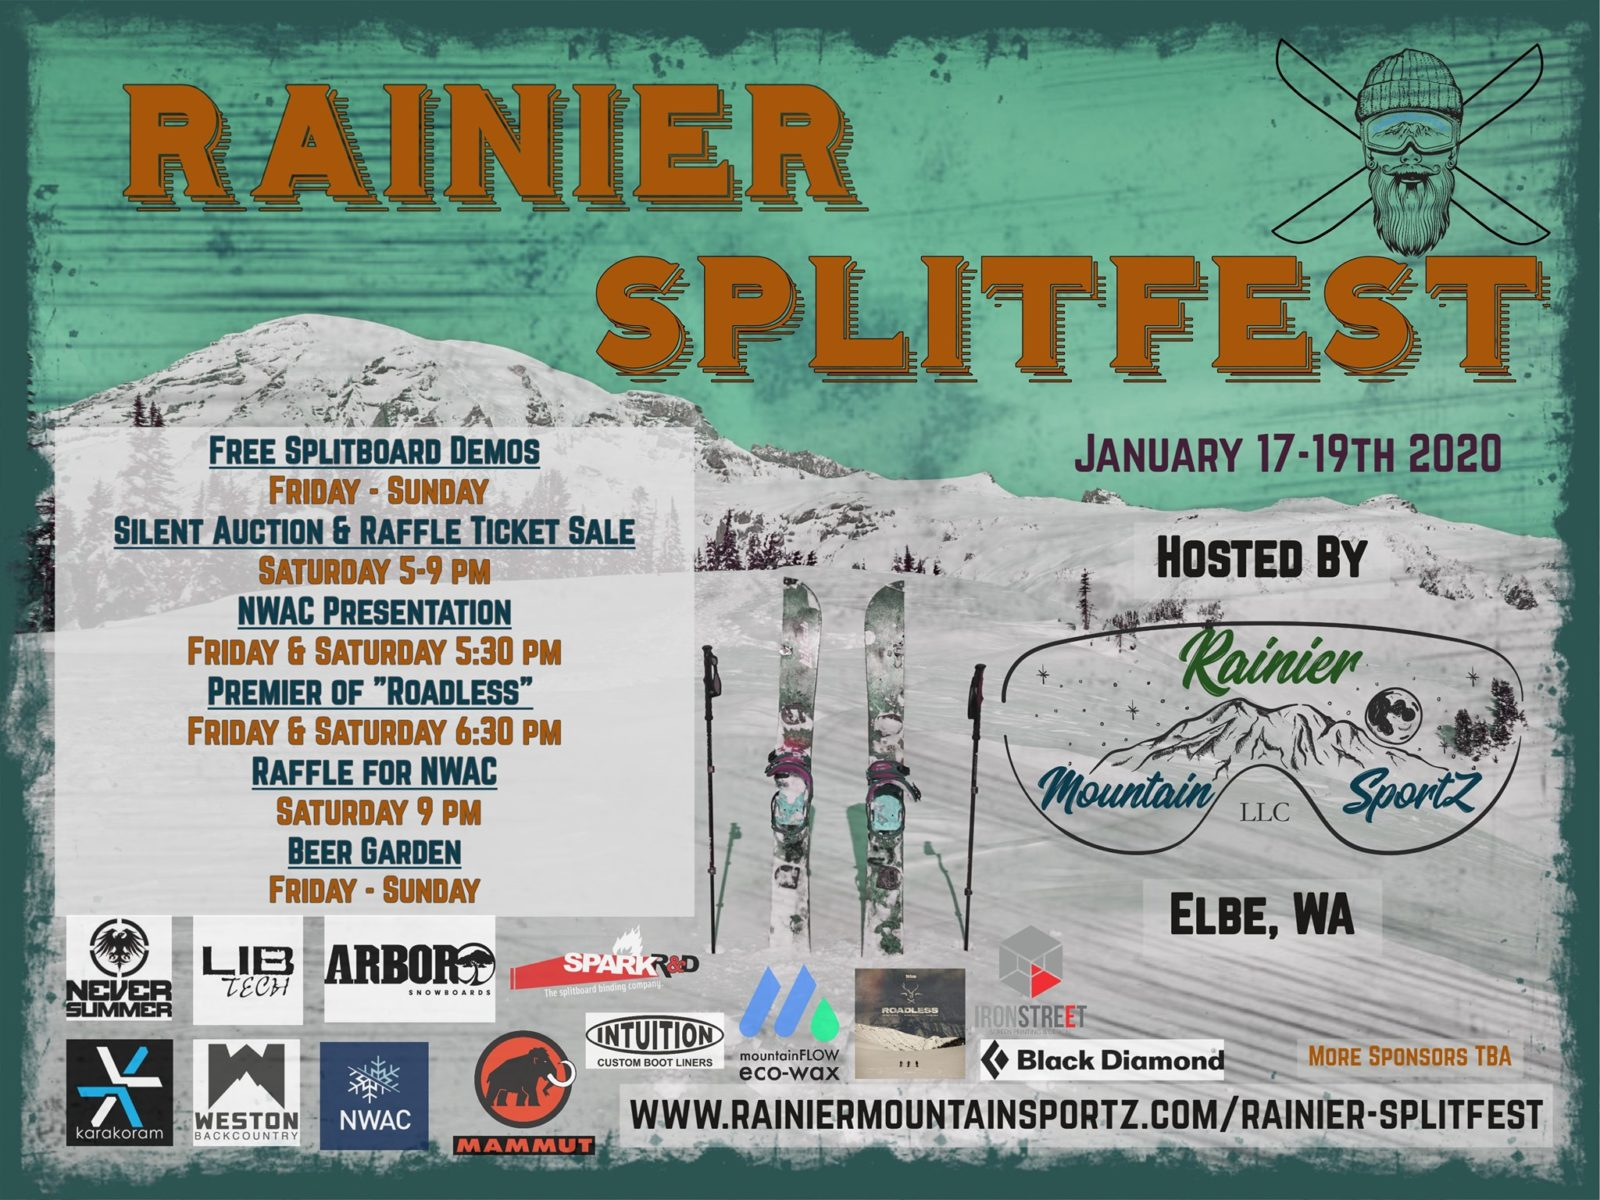 Rainier Splitfest